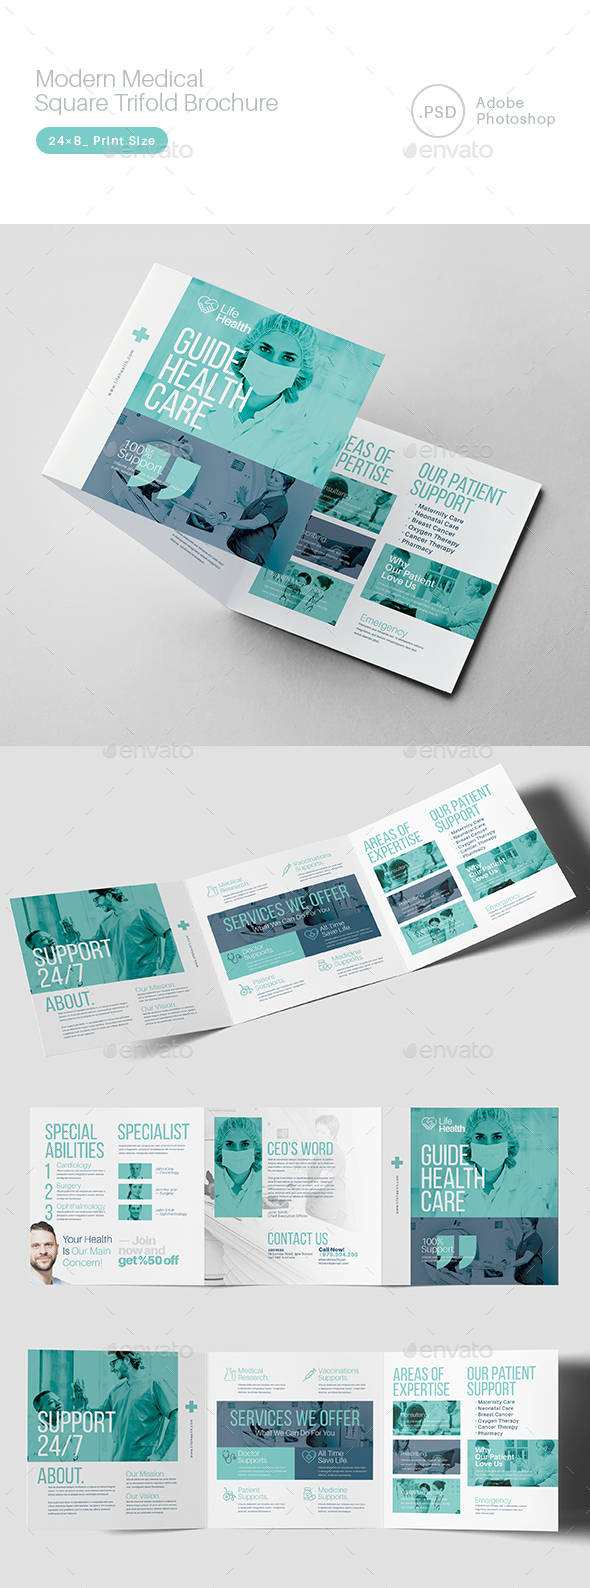 Modern Medical Square Trifold Brochure